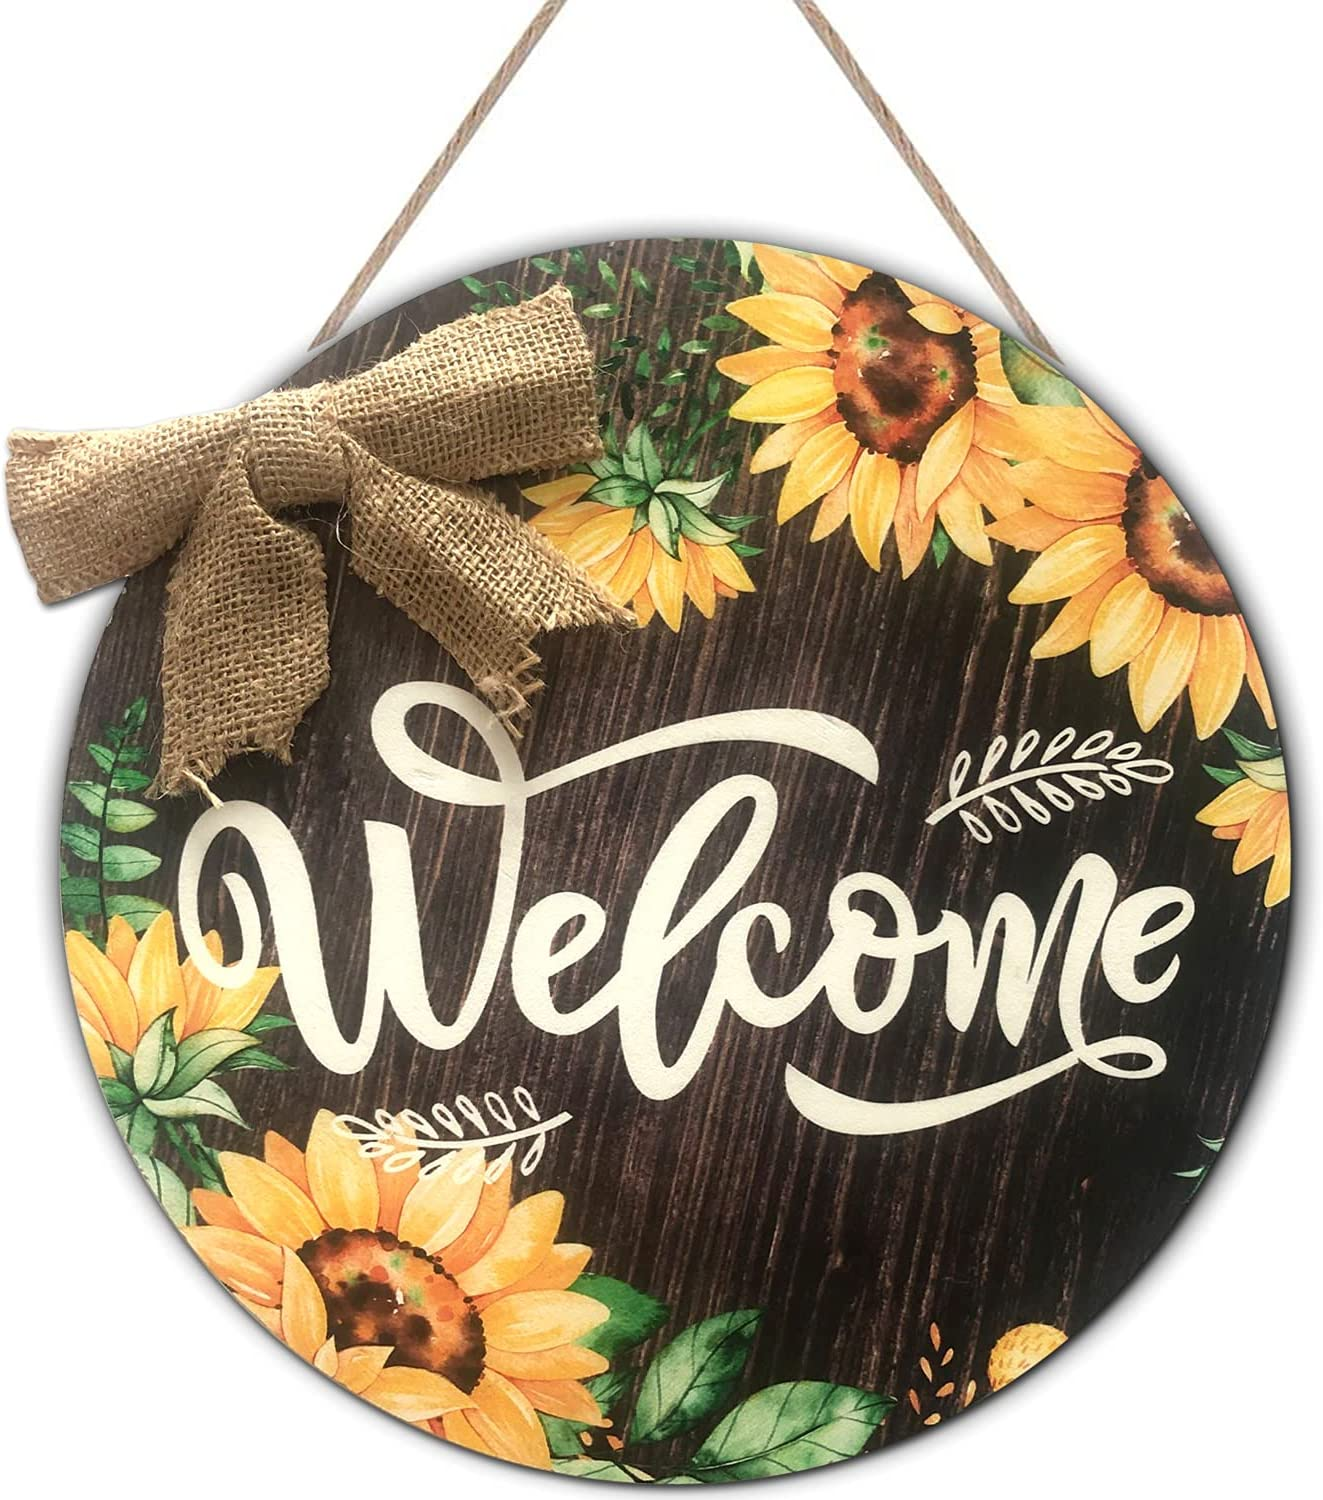 Sunflower Welcome Sign, 12 x 12 Inches Rustic Sunflower Front Door Decor with Burlap Bow, Farmhouse Porch Decoration Round Wooden Hanging Sign for Home, Restaurant Wall Décor (Sunflower)